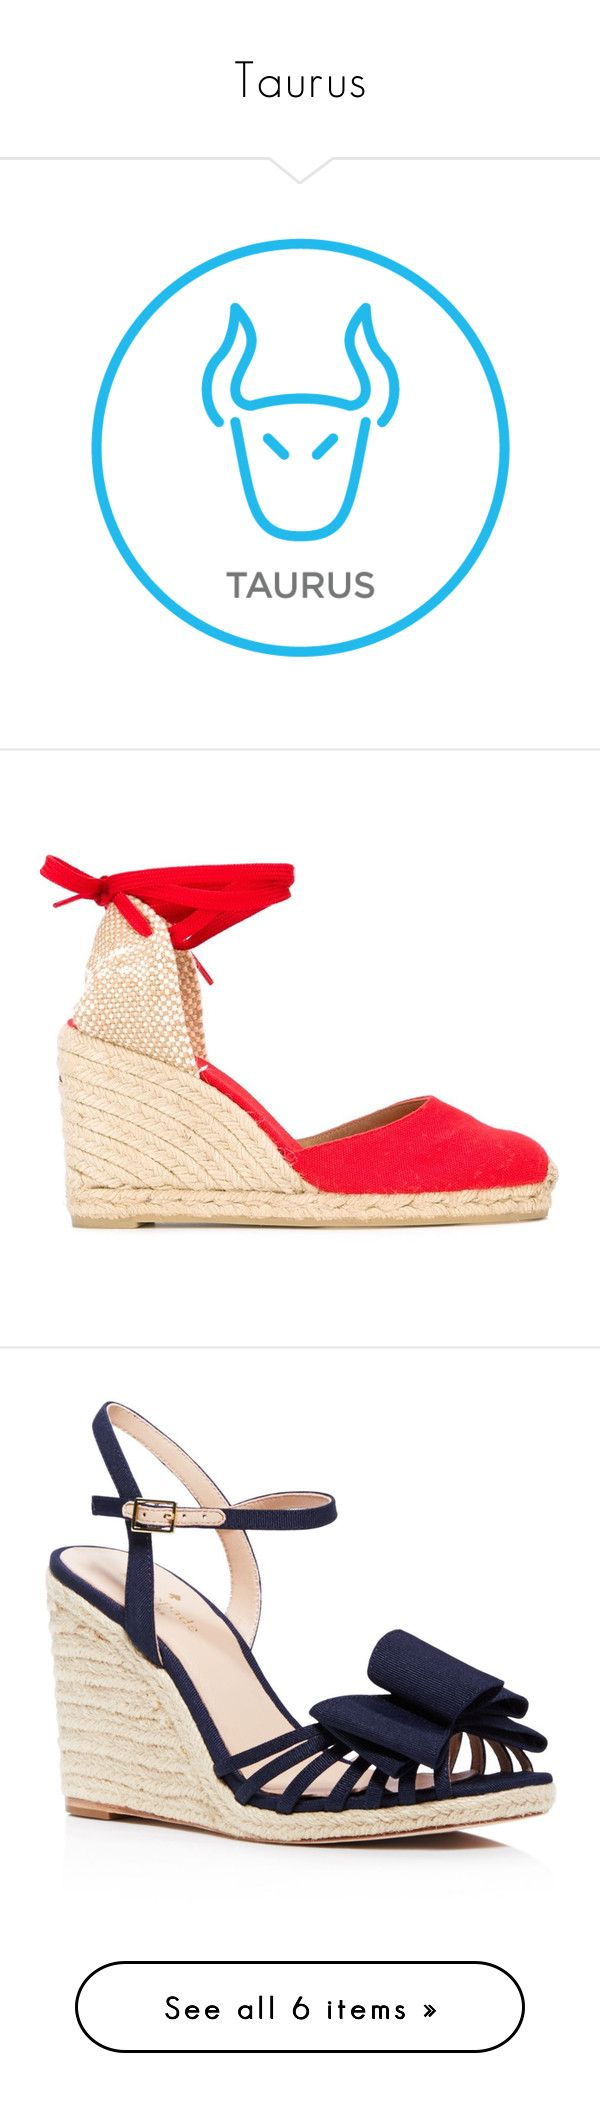 """""""Taurus"""" by blogforeverything ❤ liked on Polyvore featuring shoes, sandals, red, wedge heel shoes, red sandals, espadrille wedge shoes, wedge sandals, castaner sandals, heels and wedges"""